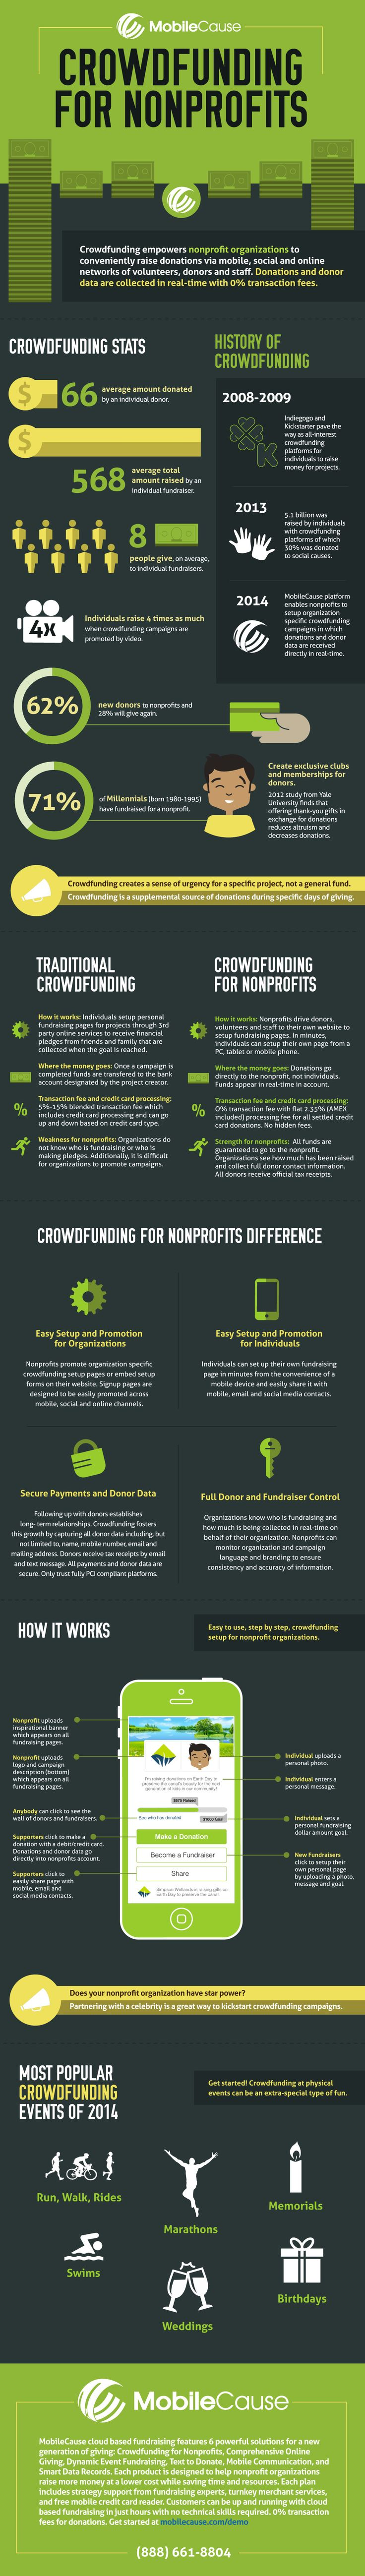 The Numbers Behind Non-Profit Crowdfunding (Infographic)